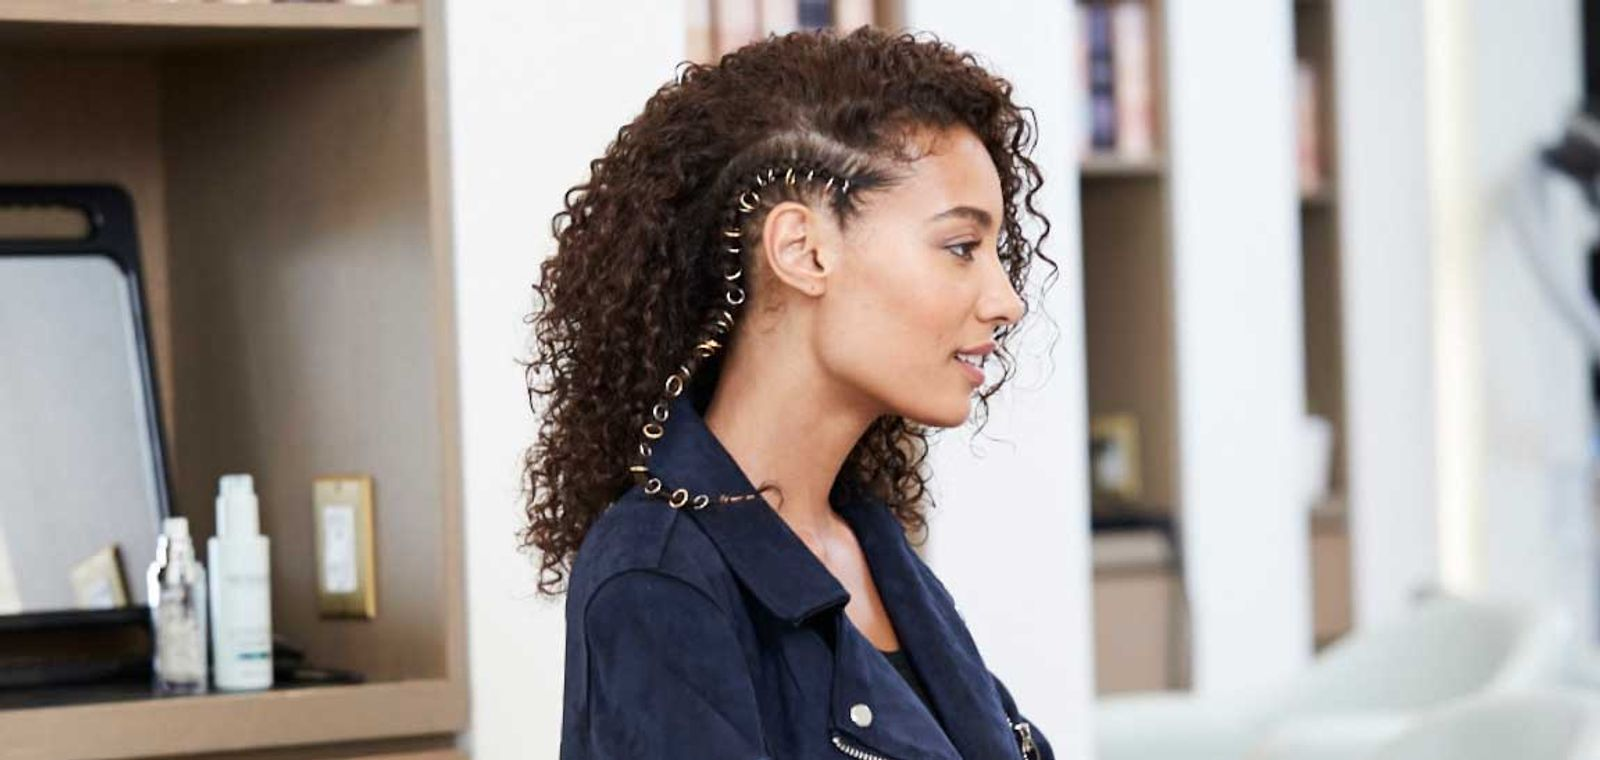 Curly Hair Image 1